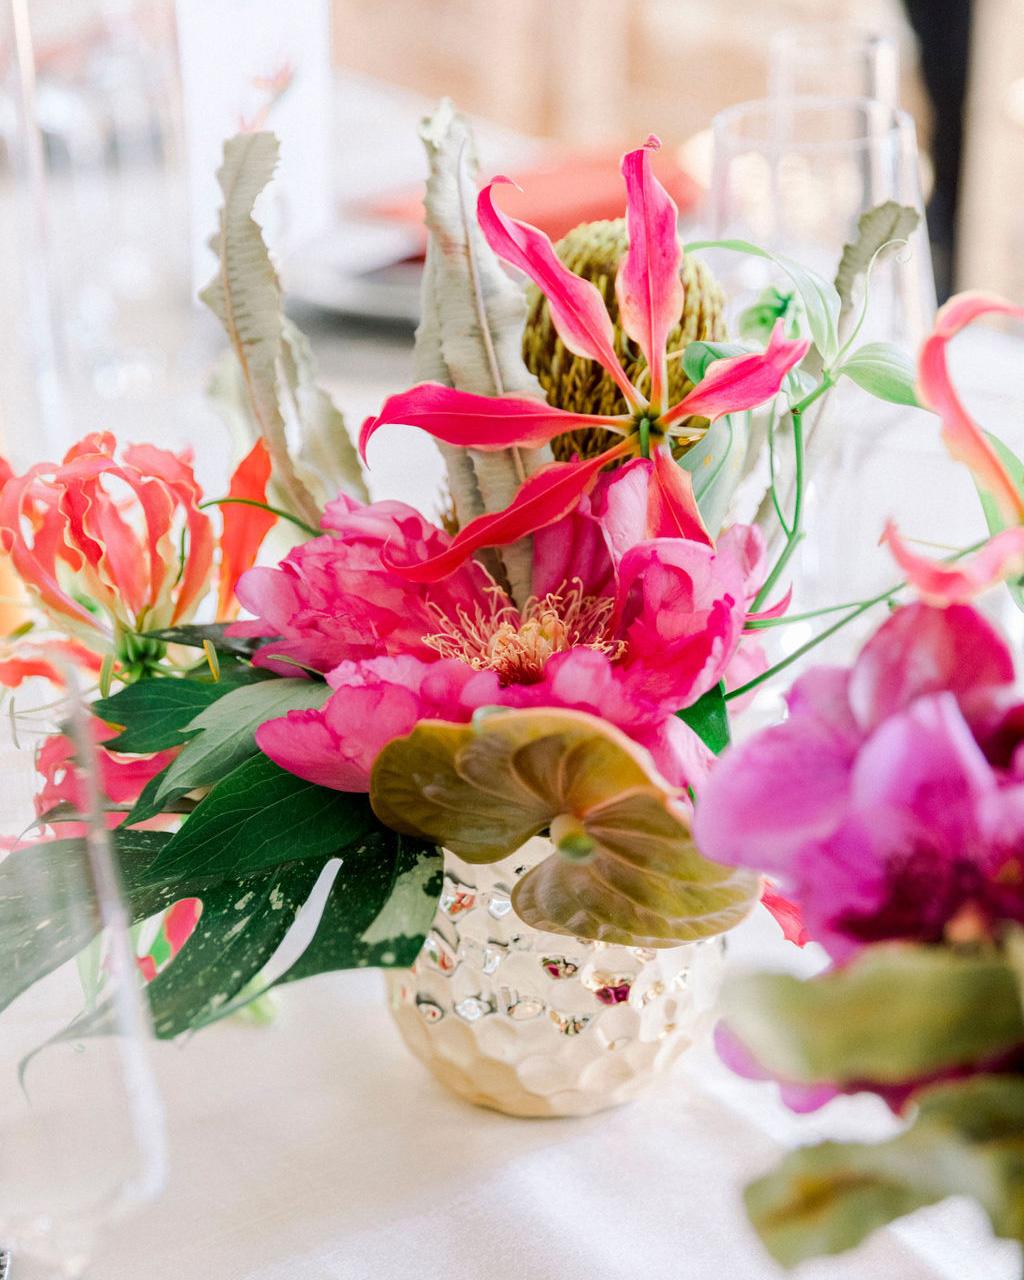 dalila elliot tropical flowers centerpiece